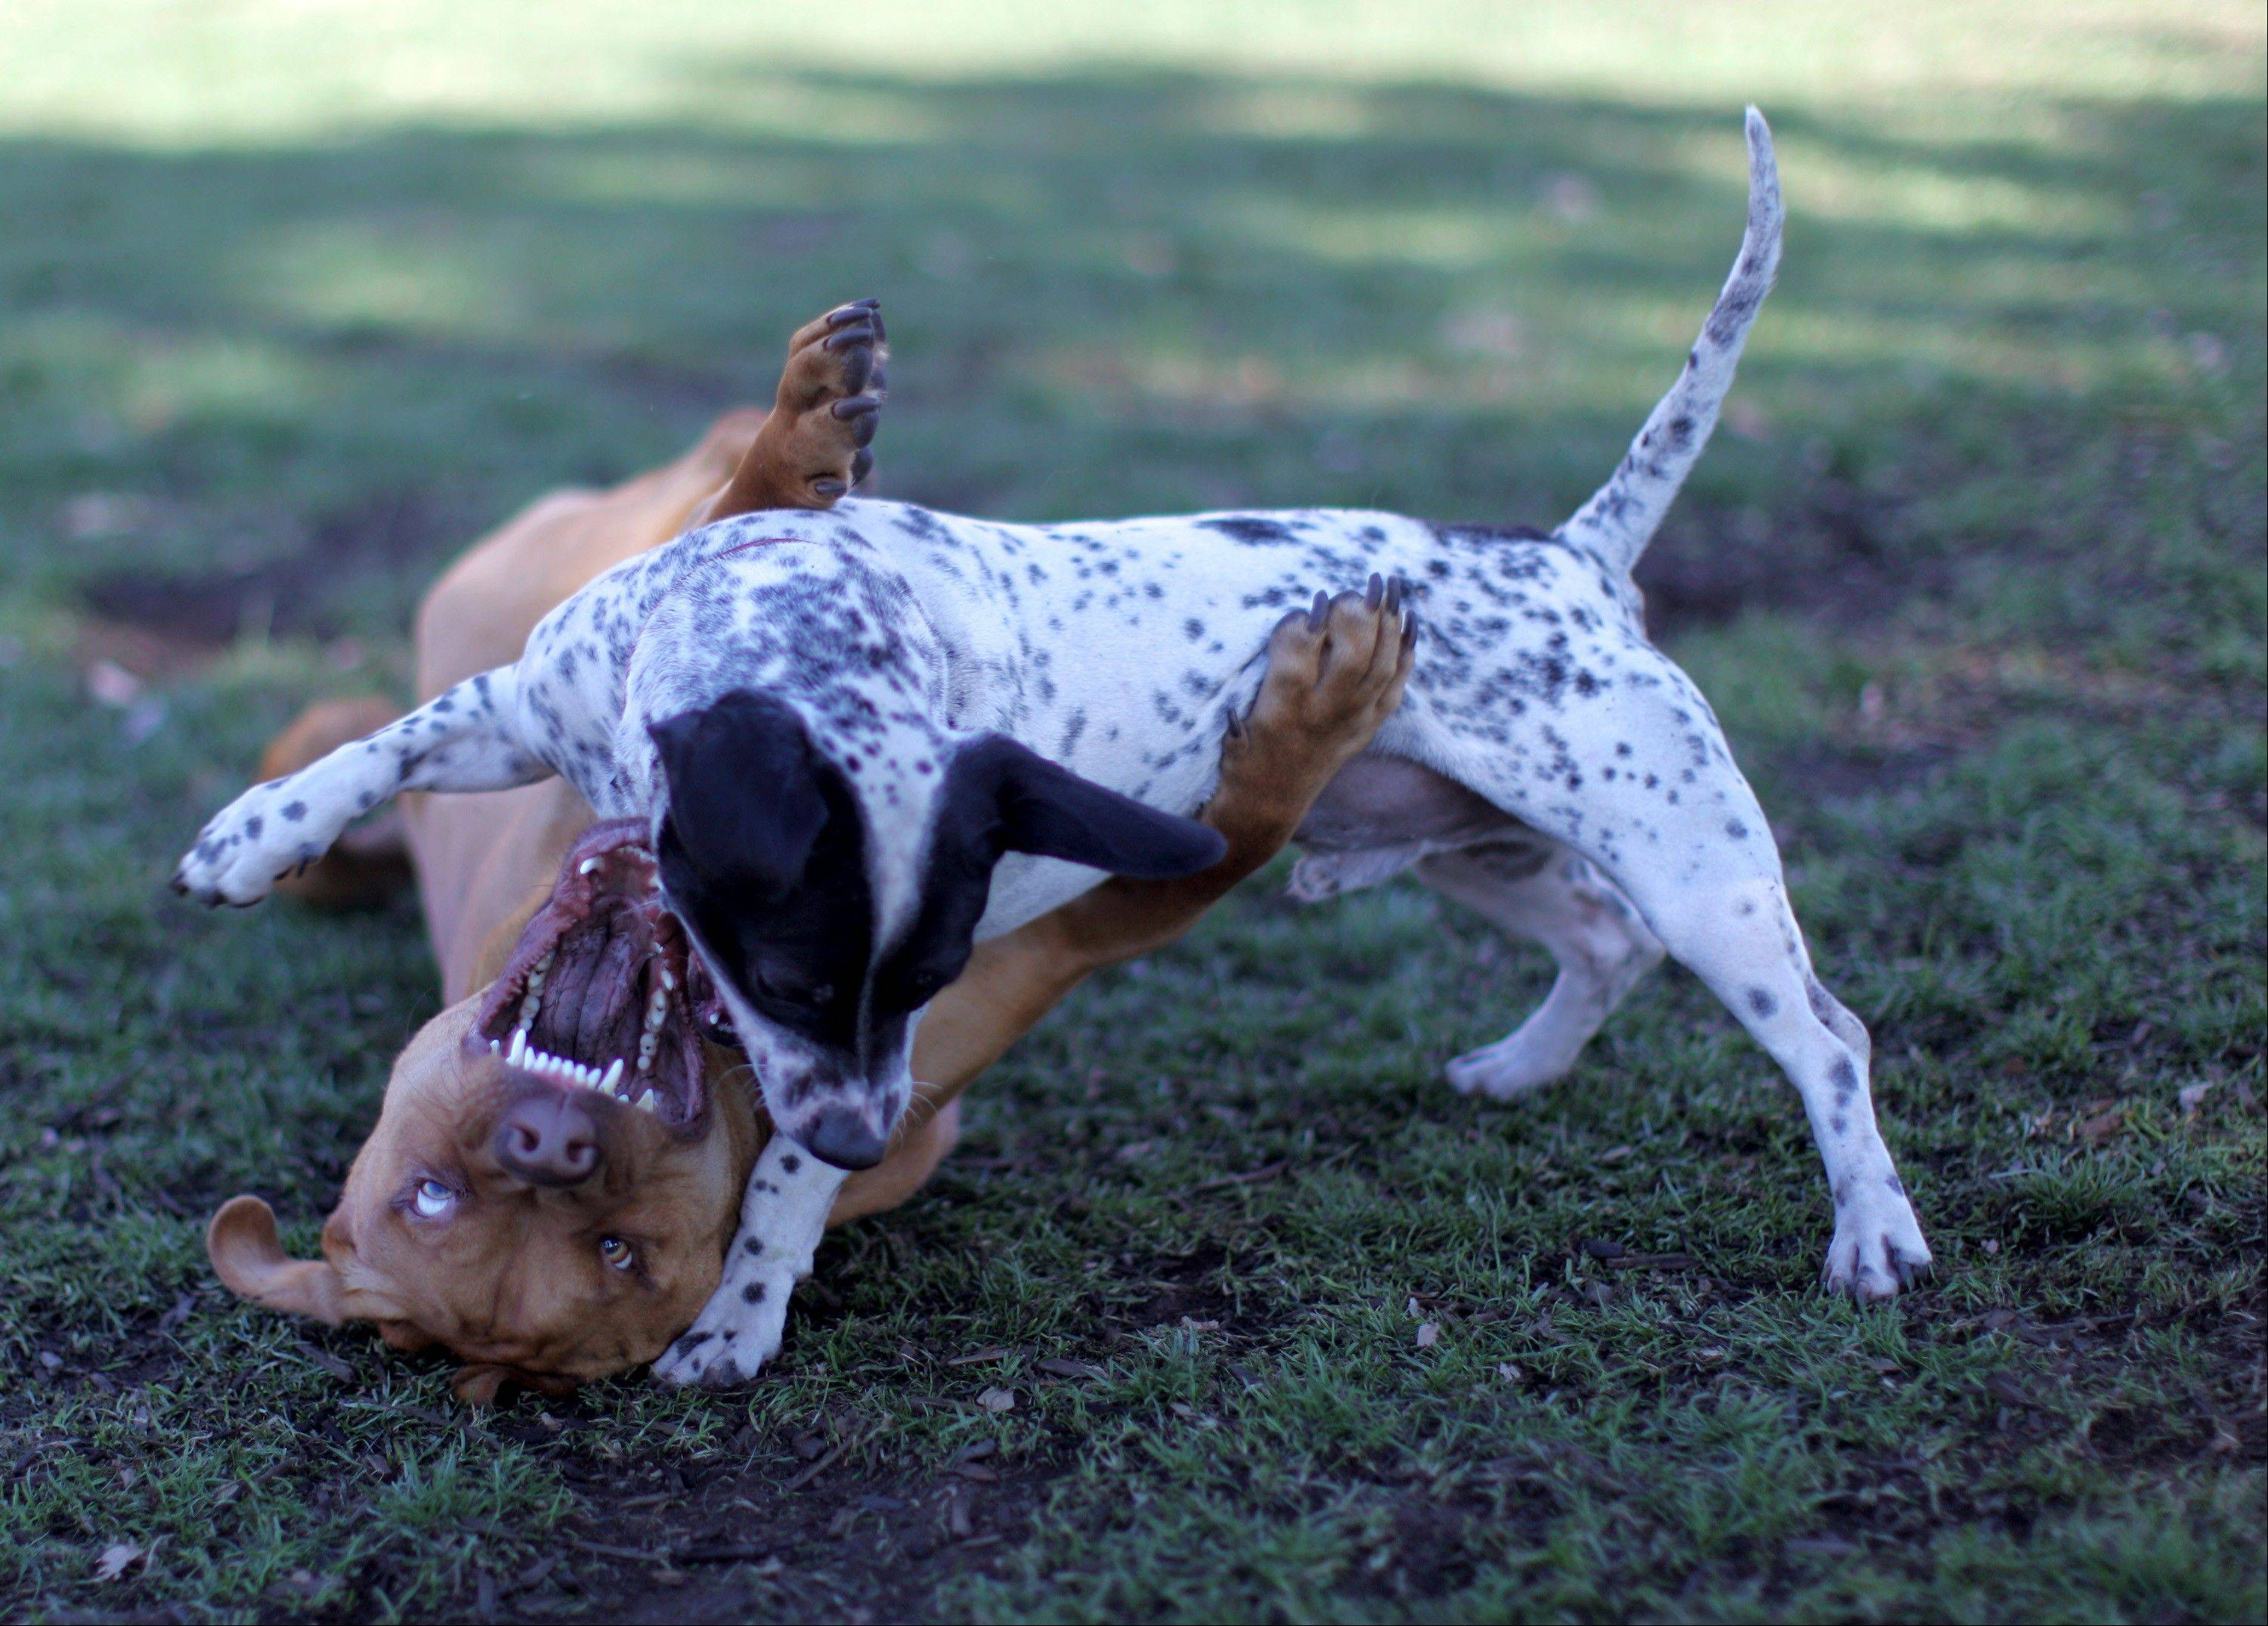 Wrestling play among dogs needs to involve turn-taking and not one dog getting pinned for a long time. To keep dog play safe and fun, you need to recognize when to calm the situation, and this should start before you're even in the park.